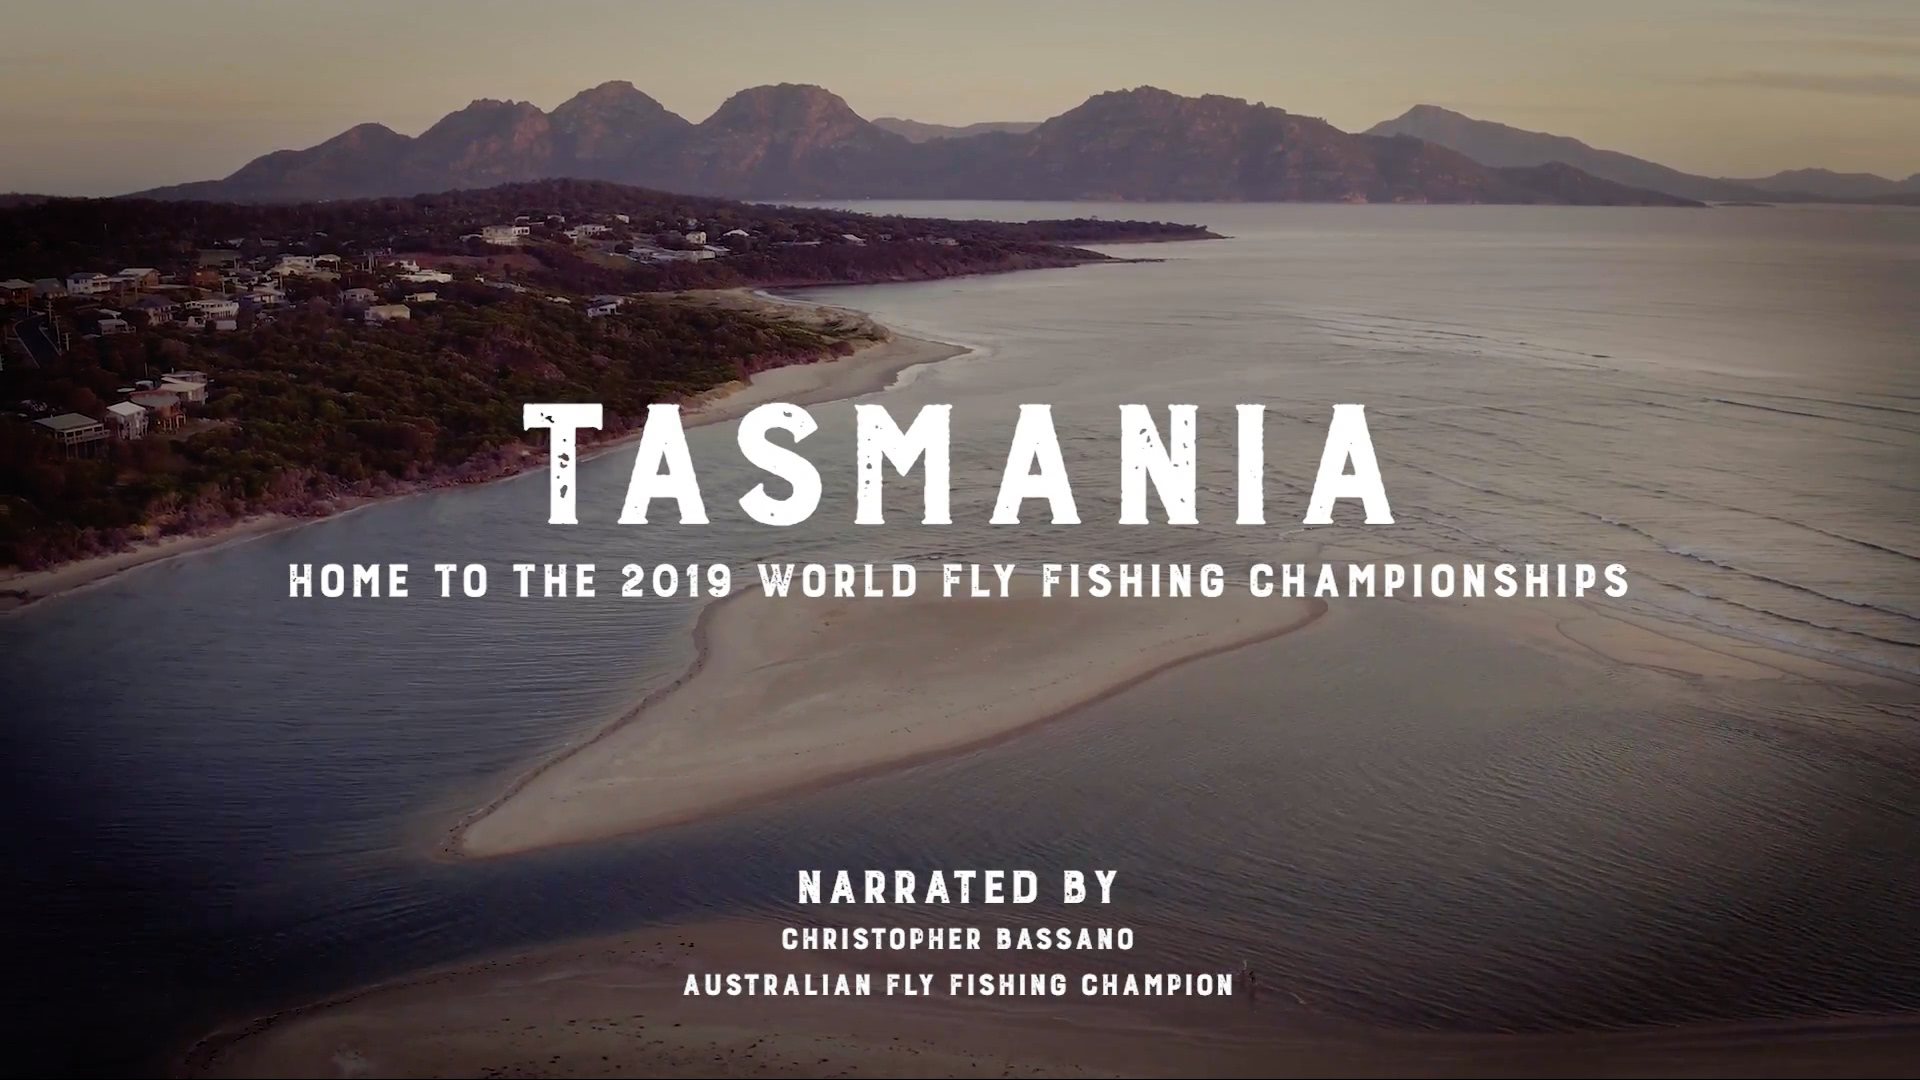 Tasmania's wild brown trout fishery established in 1864, is one of the best in the world.